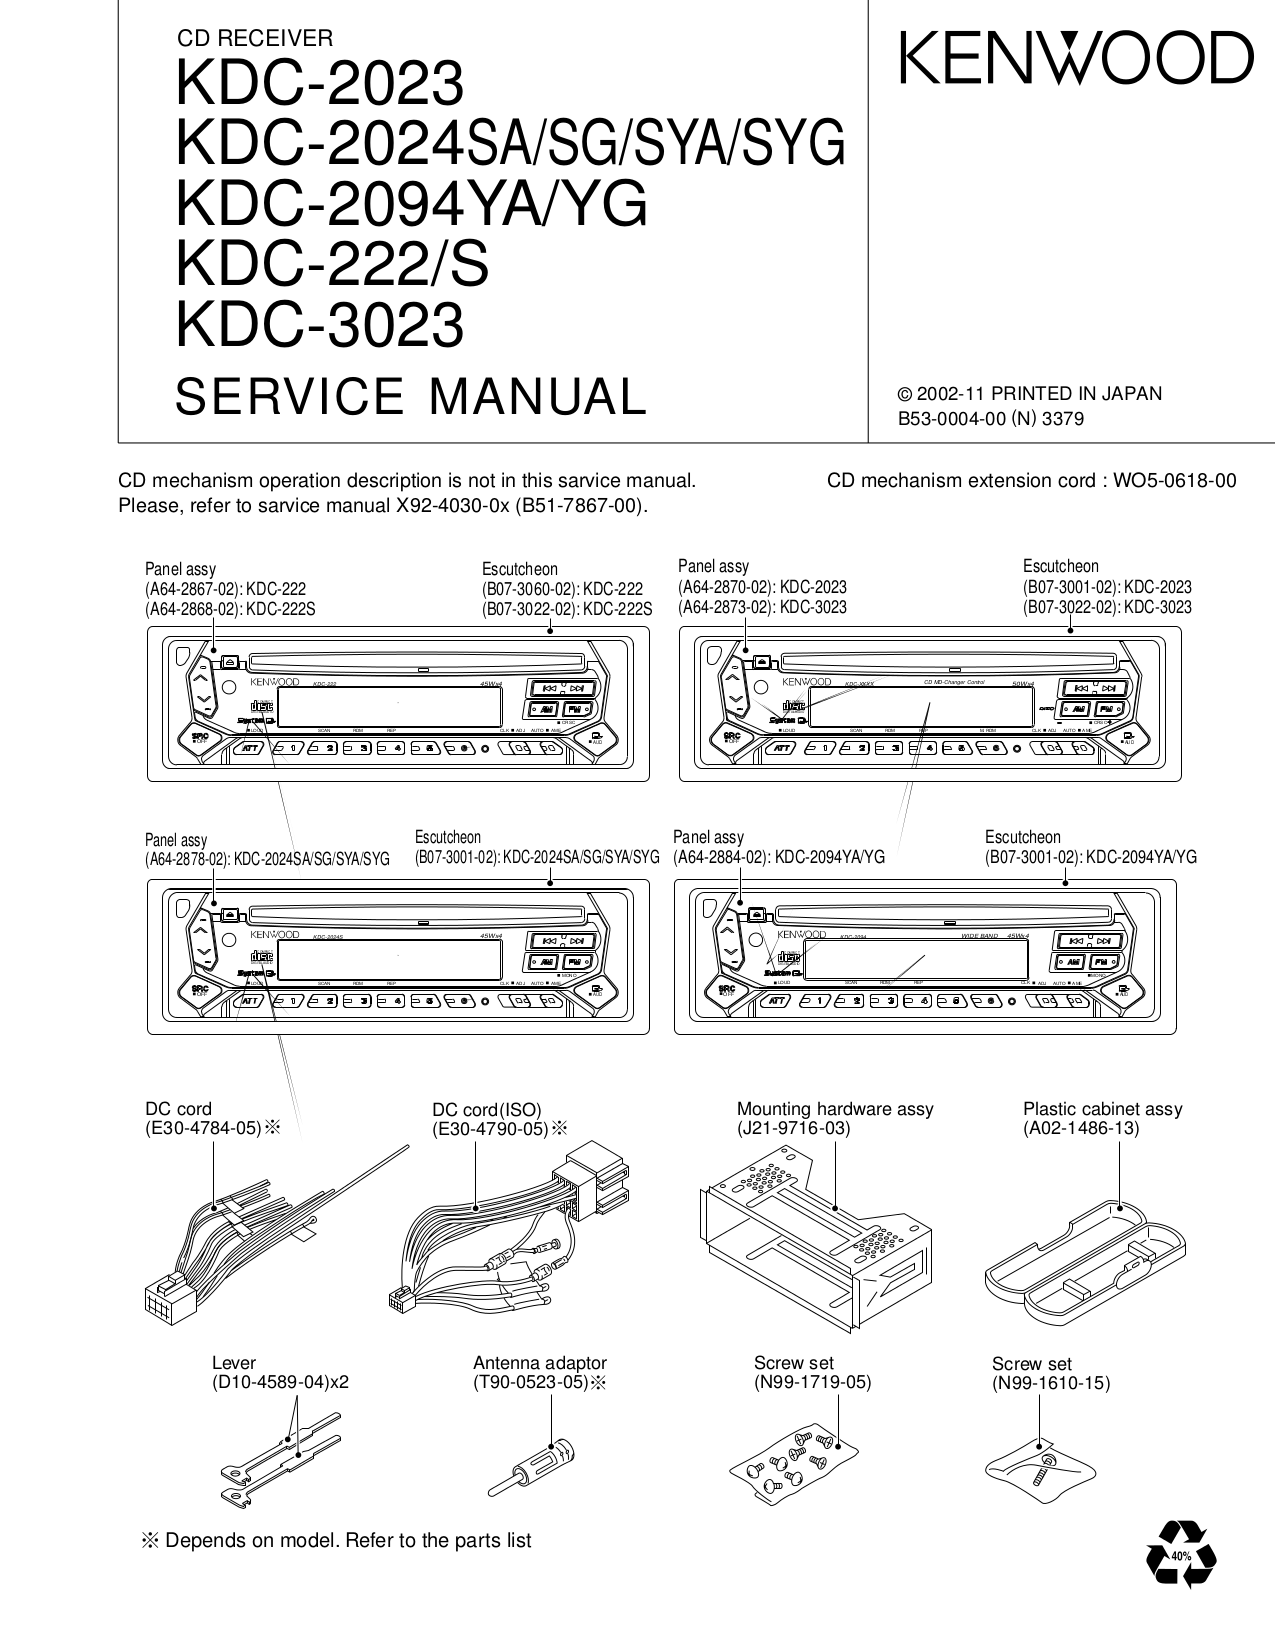 Kenwood Kdc 122 Wiring Diagram 138 Detailed Diagrams 142 30 Images Mp142 Code Kdc2023